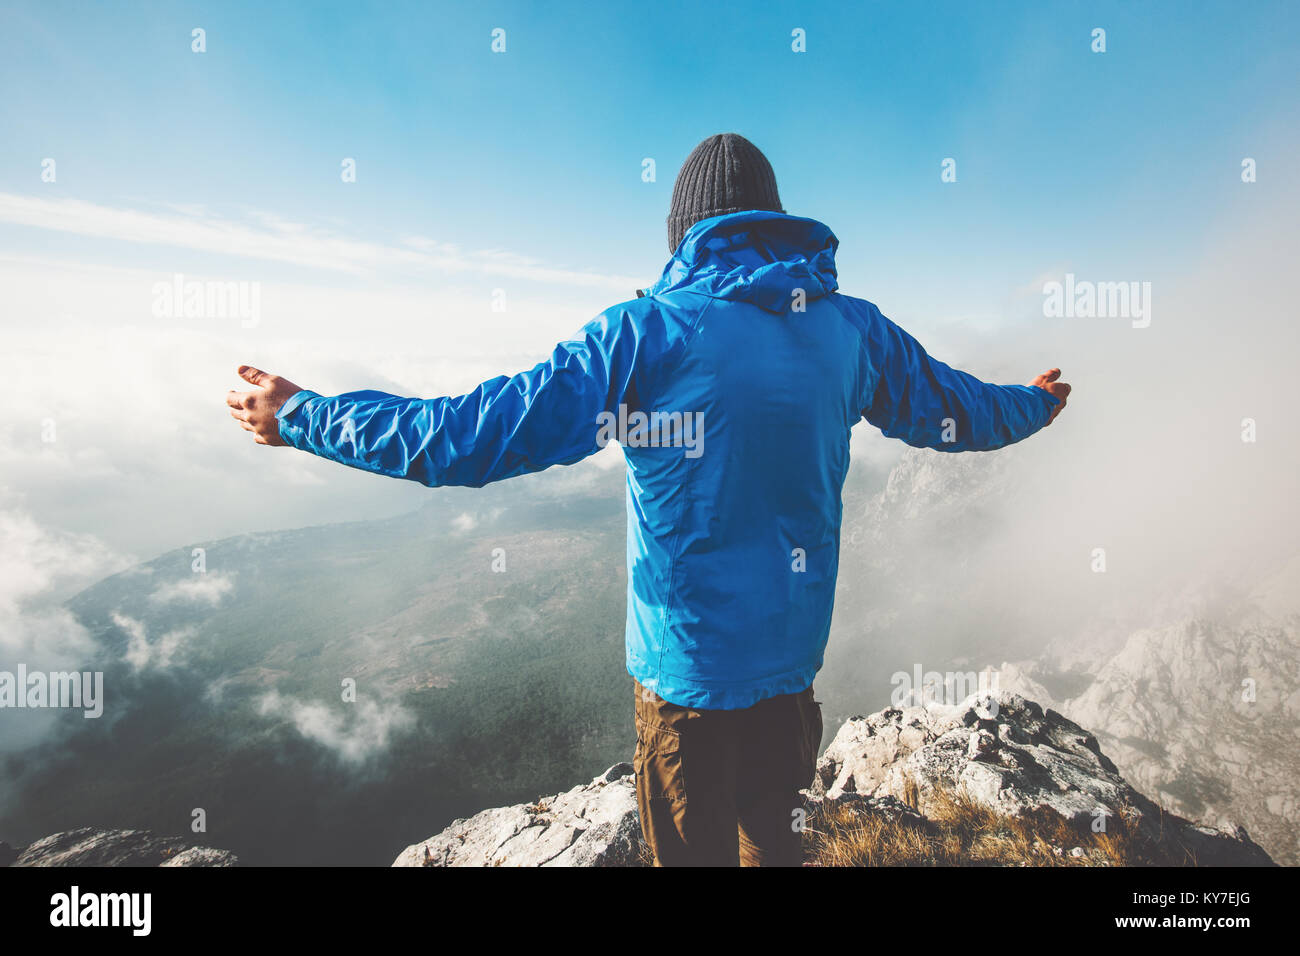 Traveler on mountain summit enjoying aerial view hands raised over clouds Travel Lifestyle success concept adventure - Stock Image